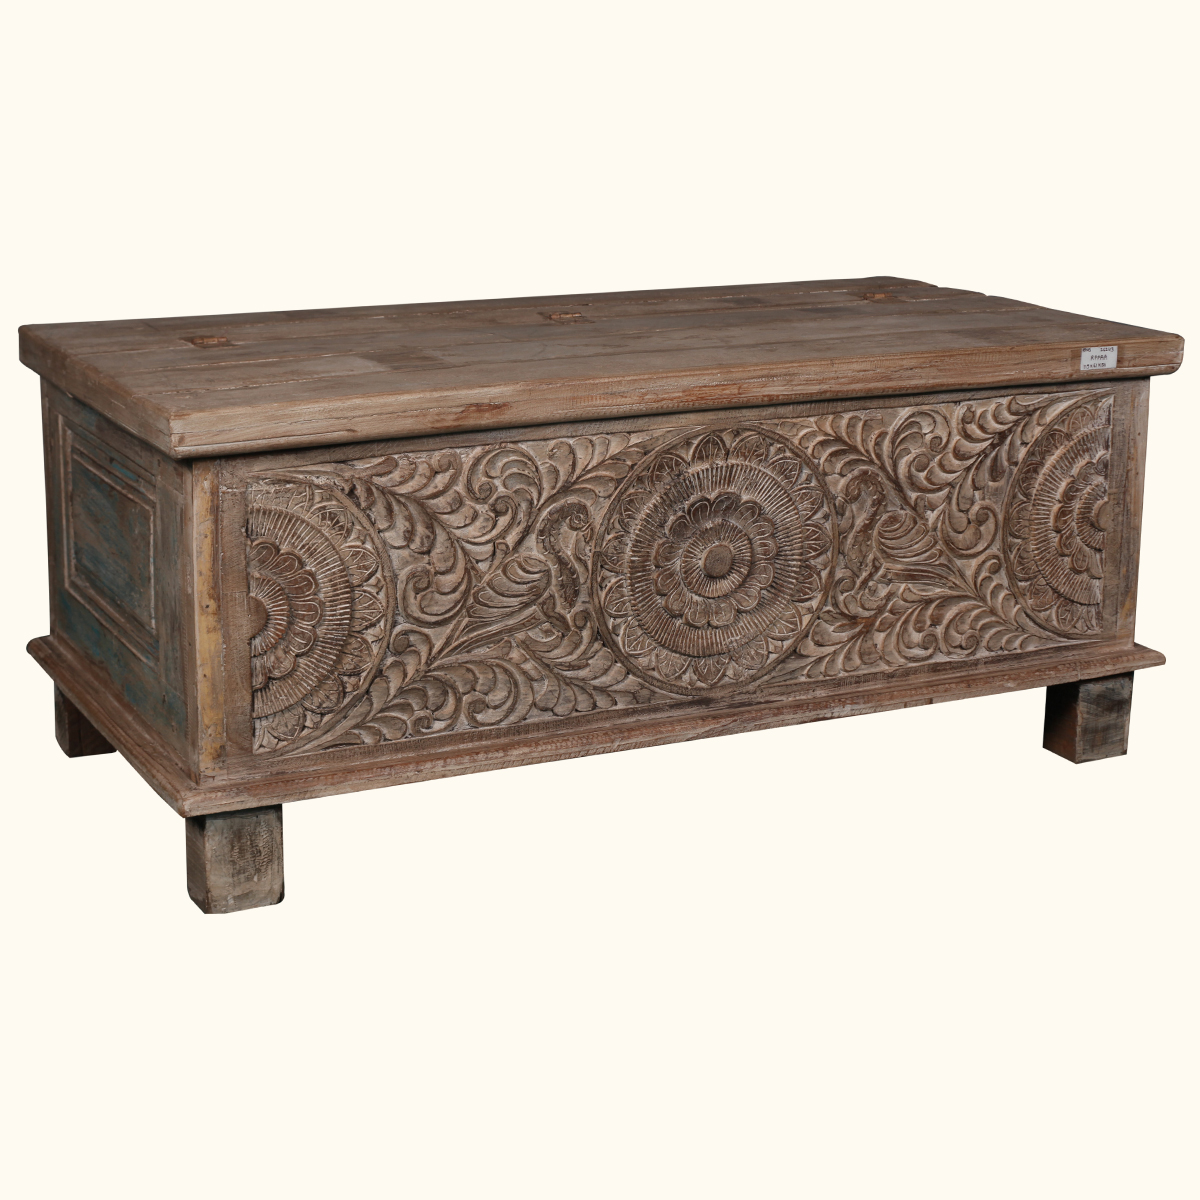 Rustic Hand Carved Reclaimed Wood Coffee Table Trunk Storage Hope Chest Box Ebay